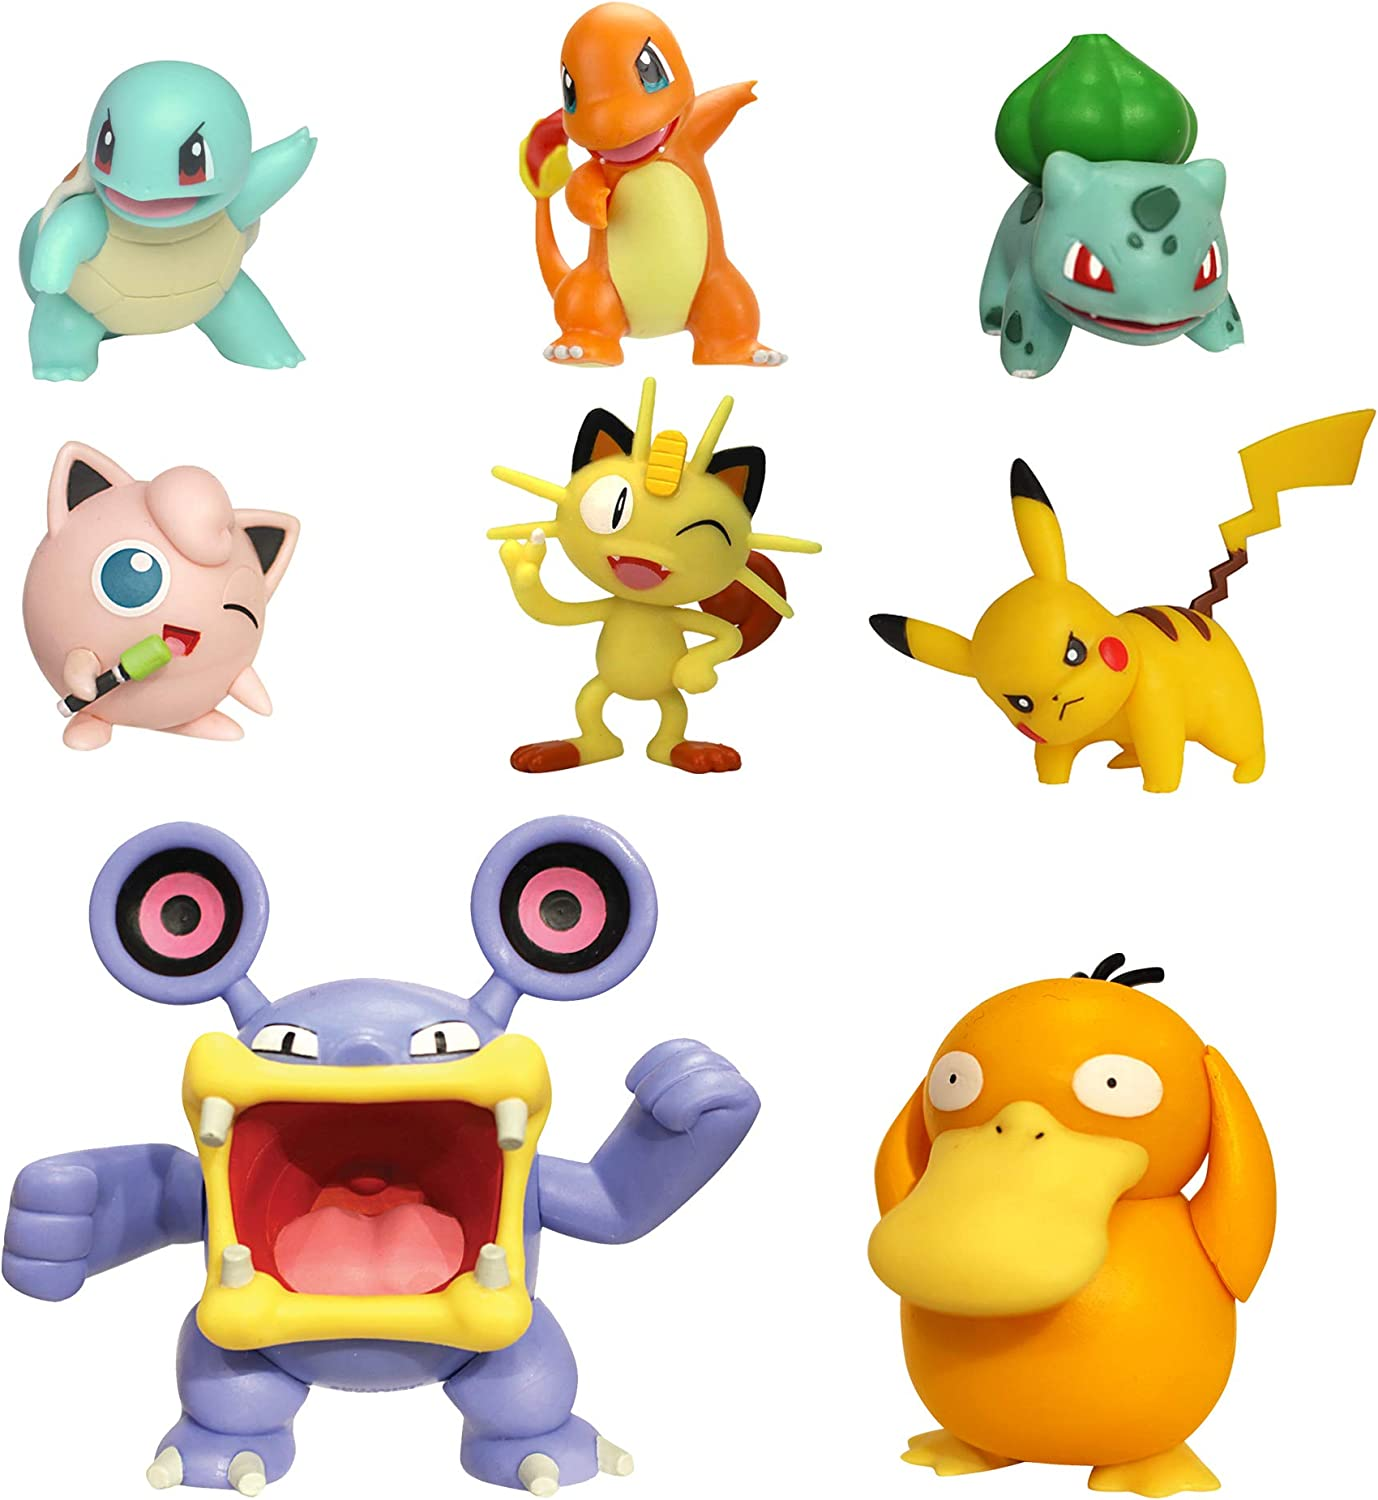 """PoKéMoN Battle Action Figure Multi 8 Pack - Comes with 2"""" Pikachu, 2"""" Bulbasaur, 2"""" Squirtle, 2"""" Charmander, 2"""" Meowth, 3"""" Loudred, and 3"""" Psyduck"""